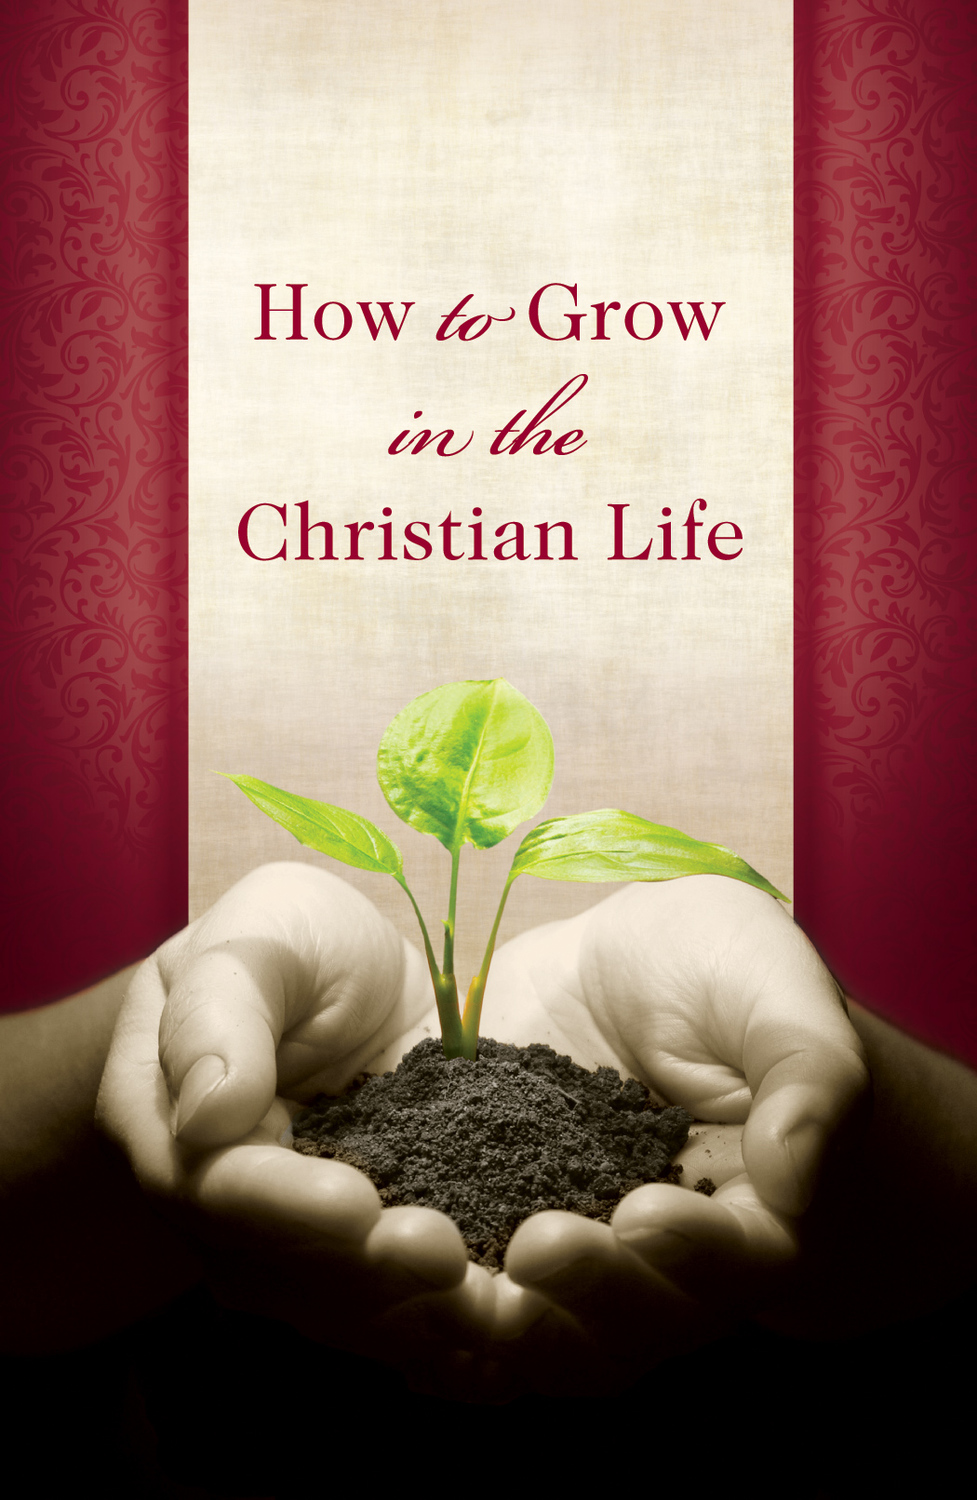 How to Grow in the Christian Life